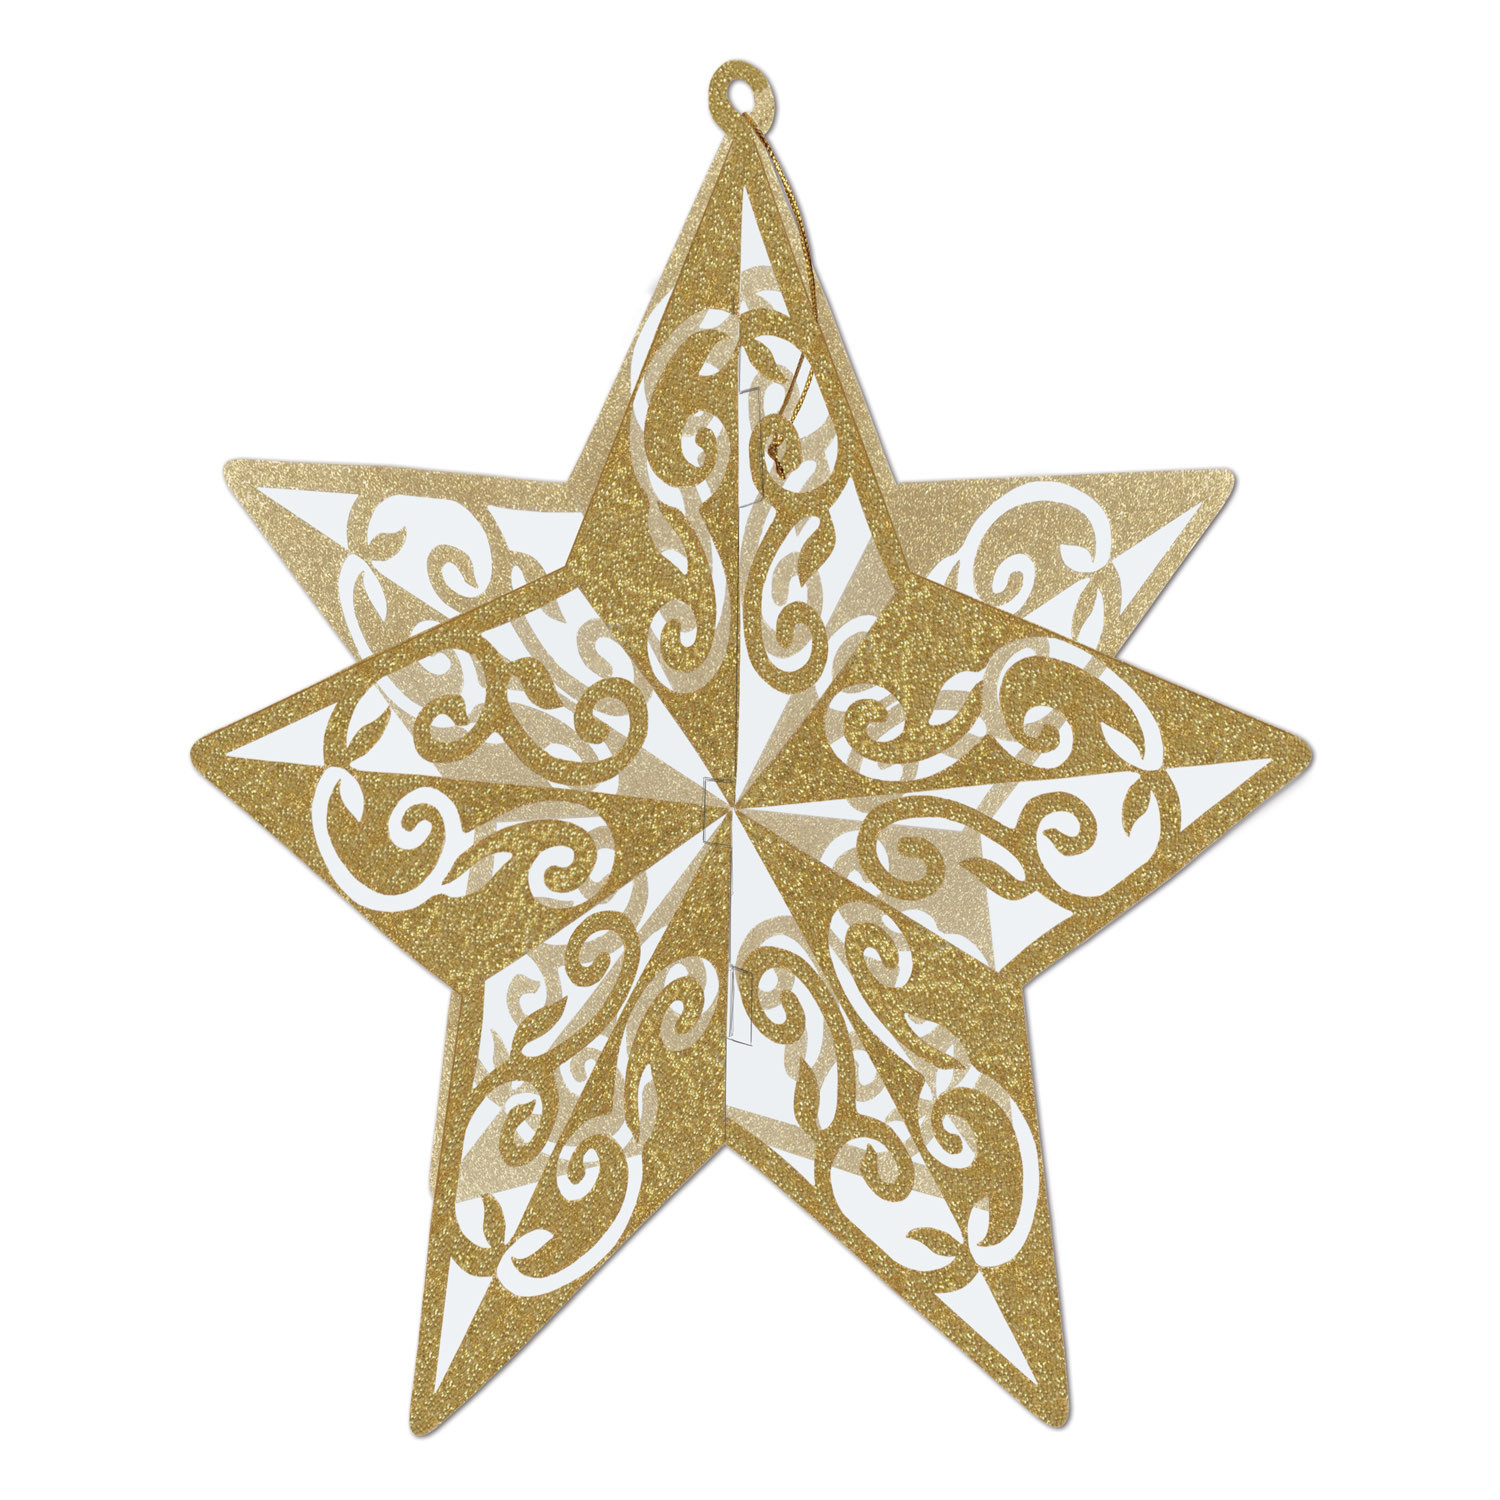 3-D Glittered Star Centerpiece (Pack of 12) 3-D, glitter, gold, star, centerpiece, new years